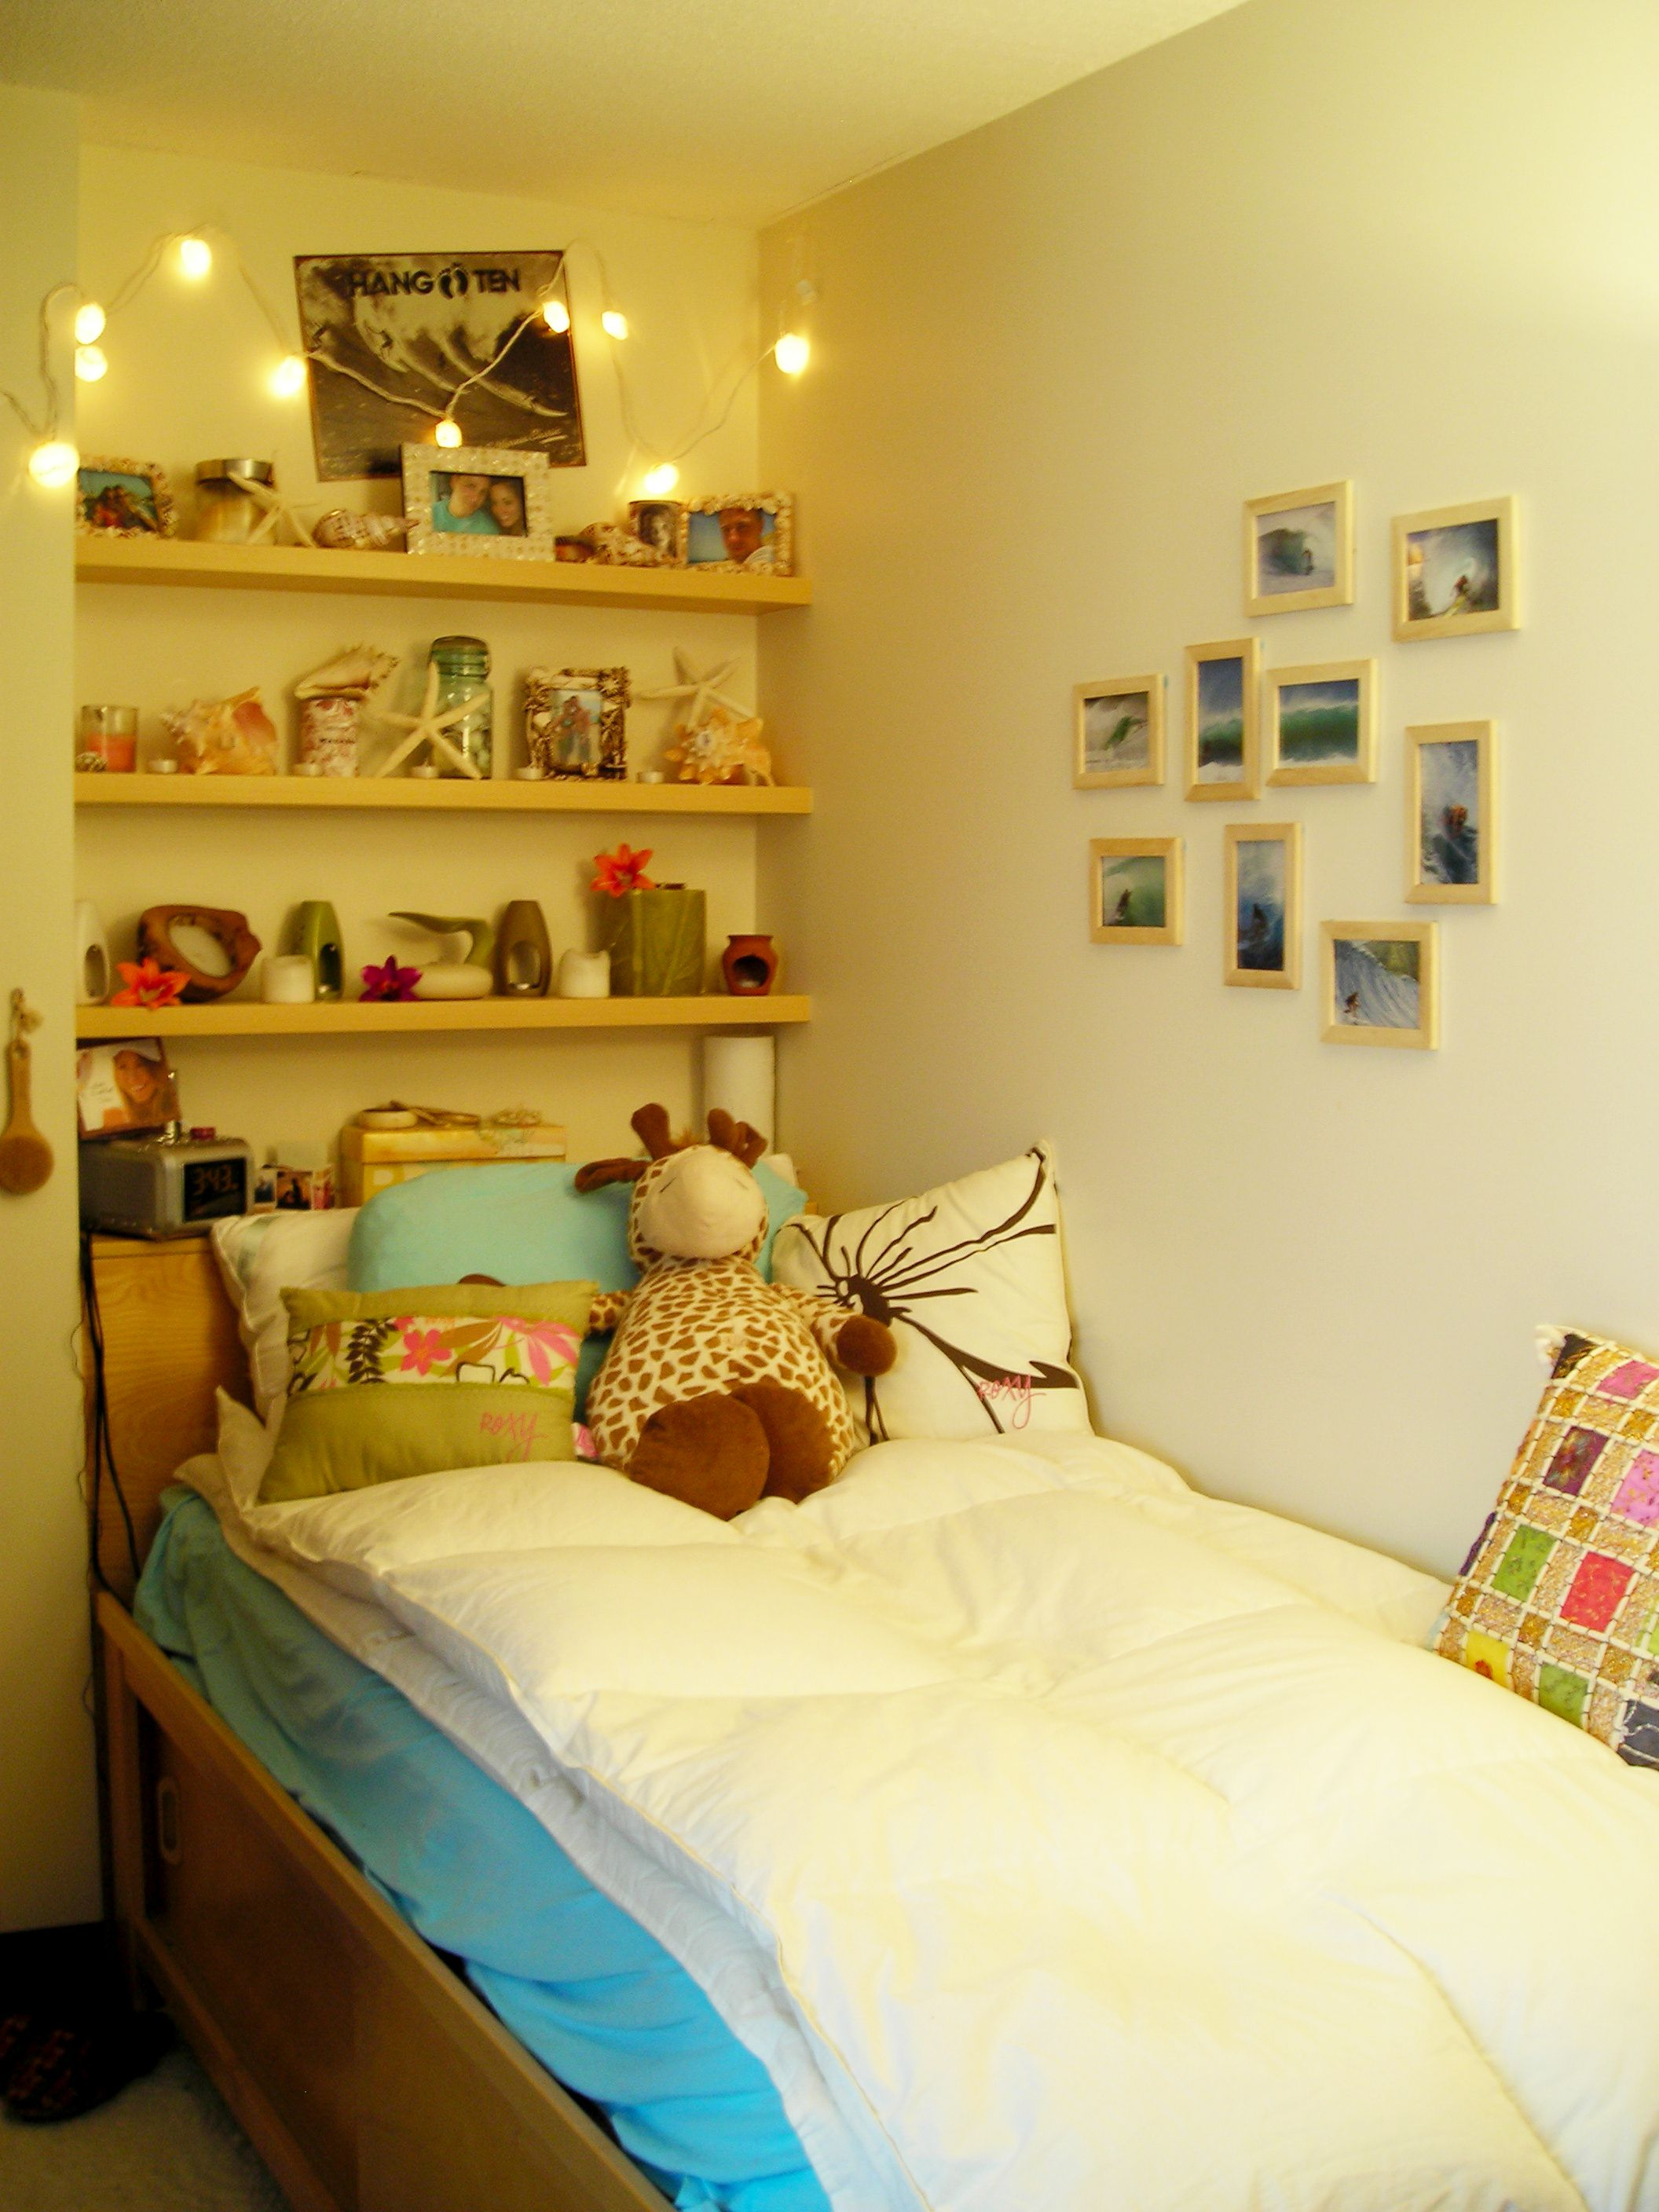 Dorm decorating ideas pinterest - Beach Themed Decorations In A Dorm Room At The Sfu Burnaby Campus